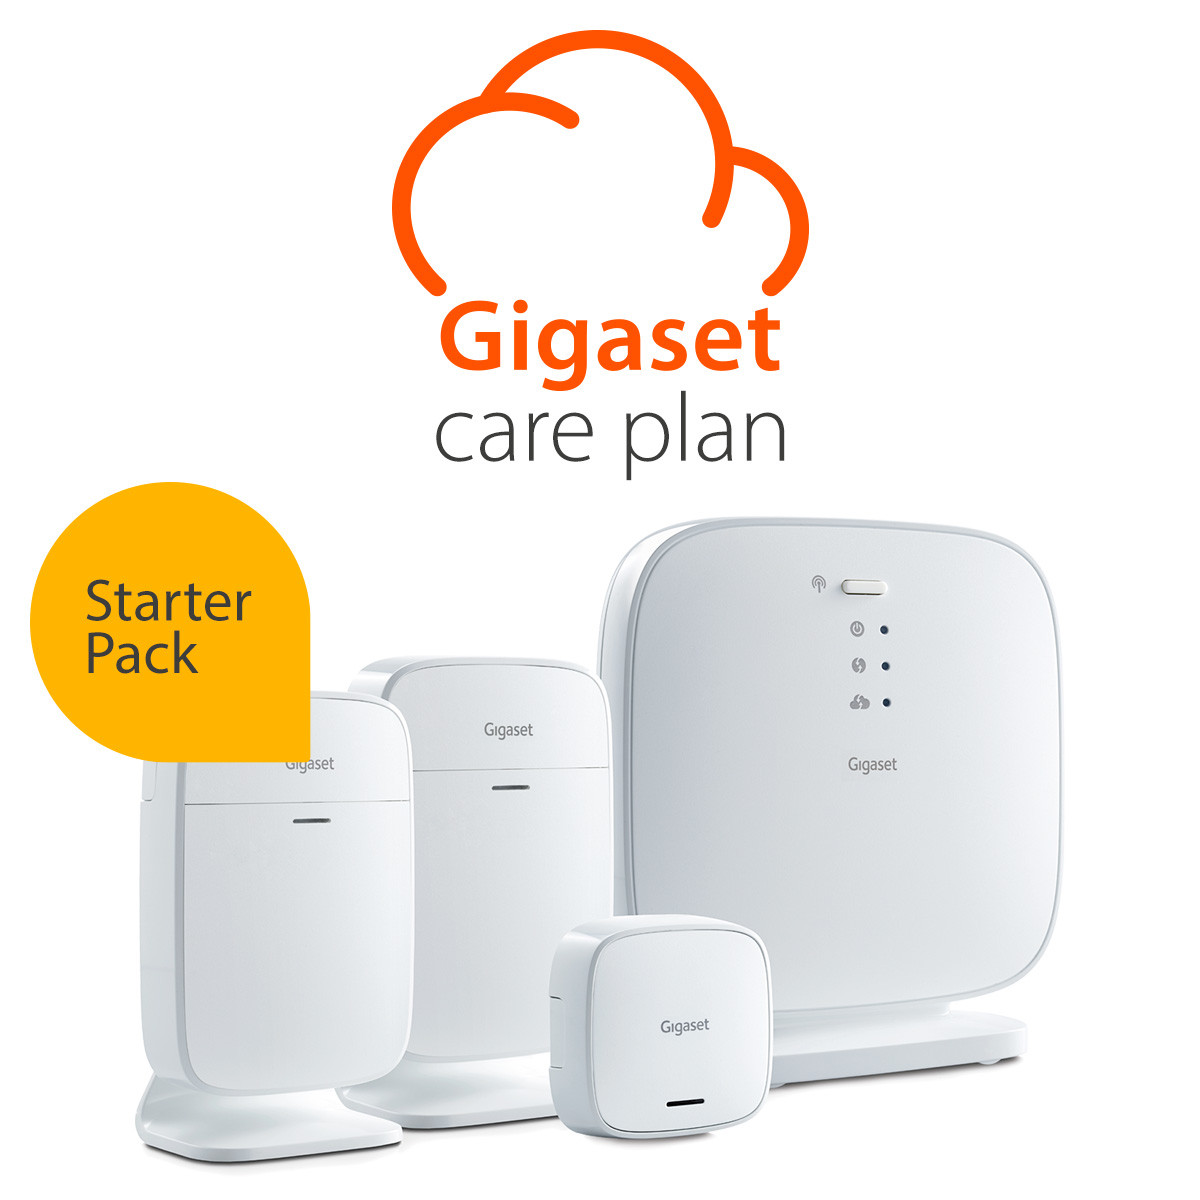 Gigaset smart motion